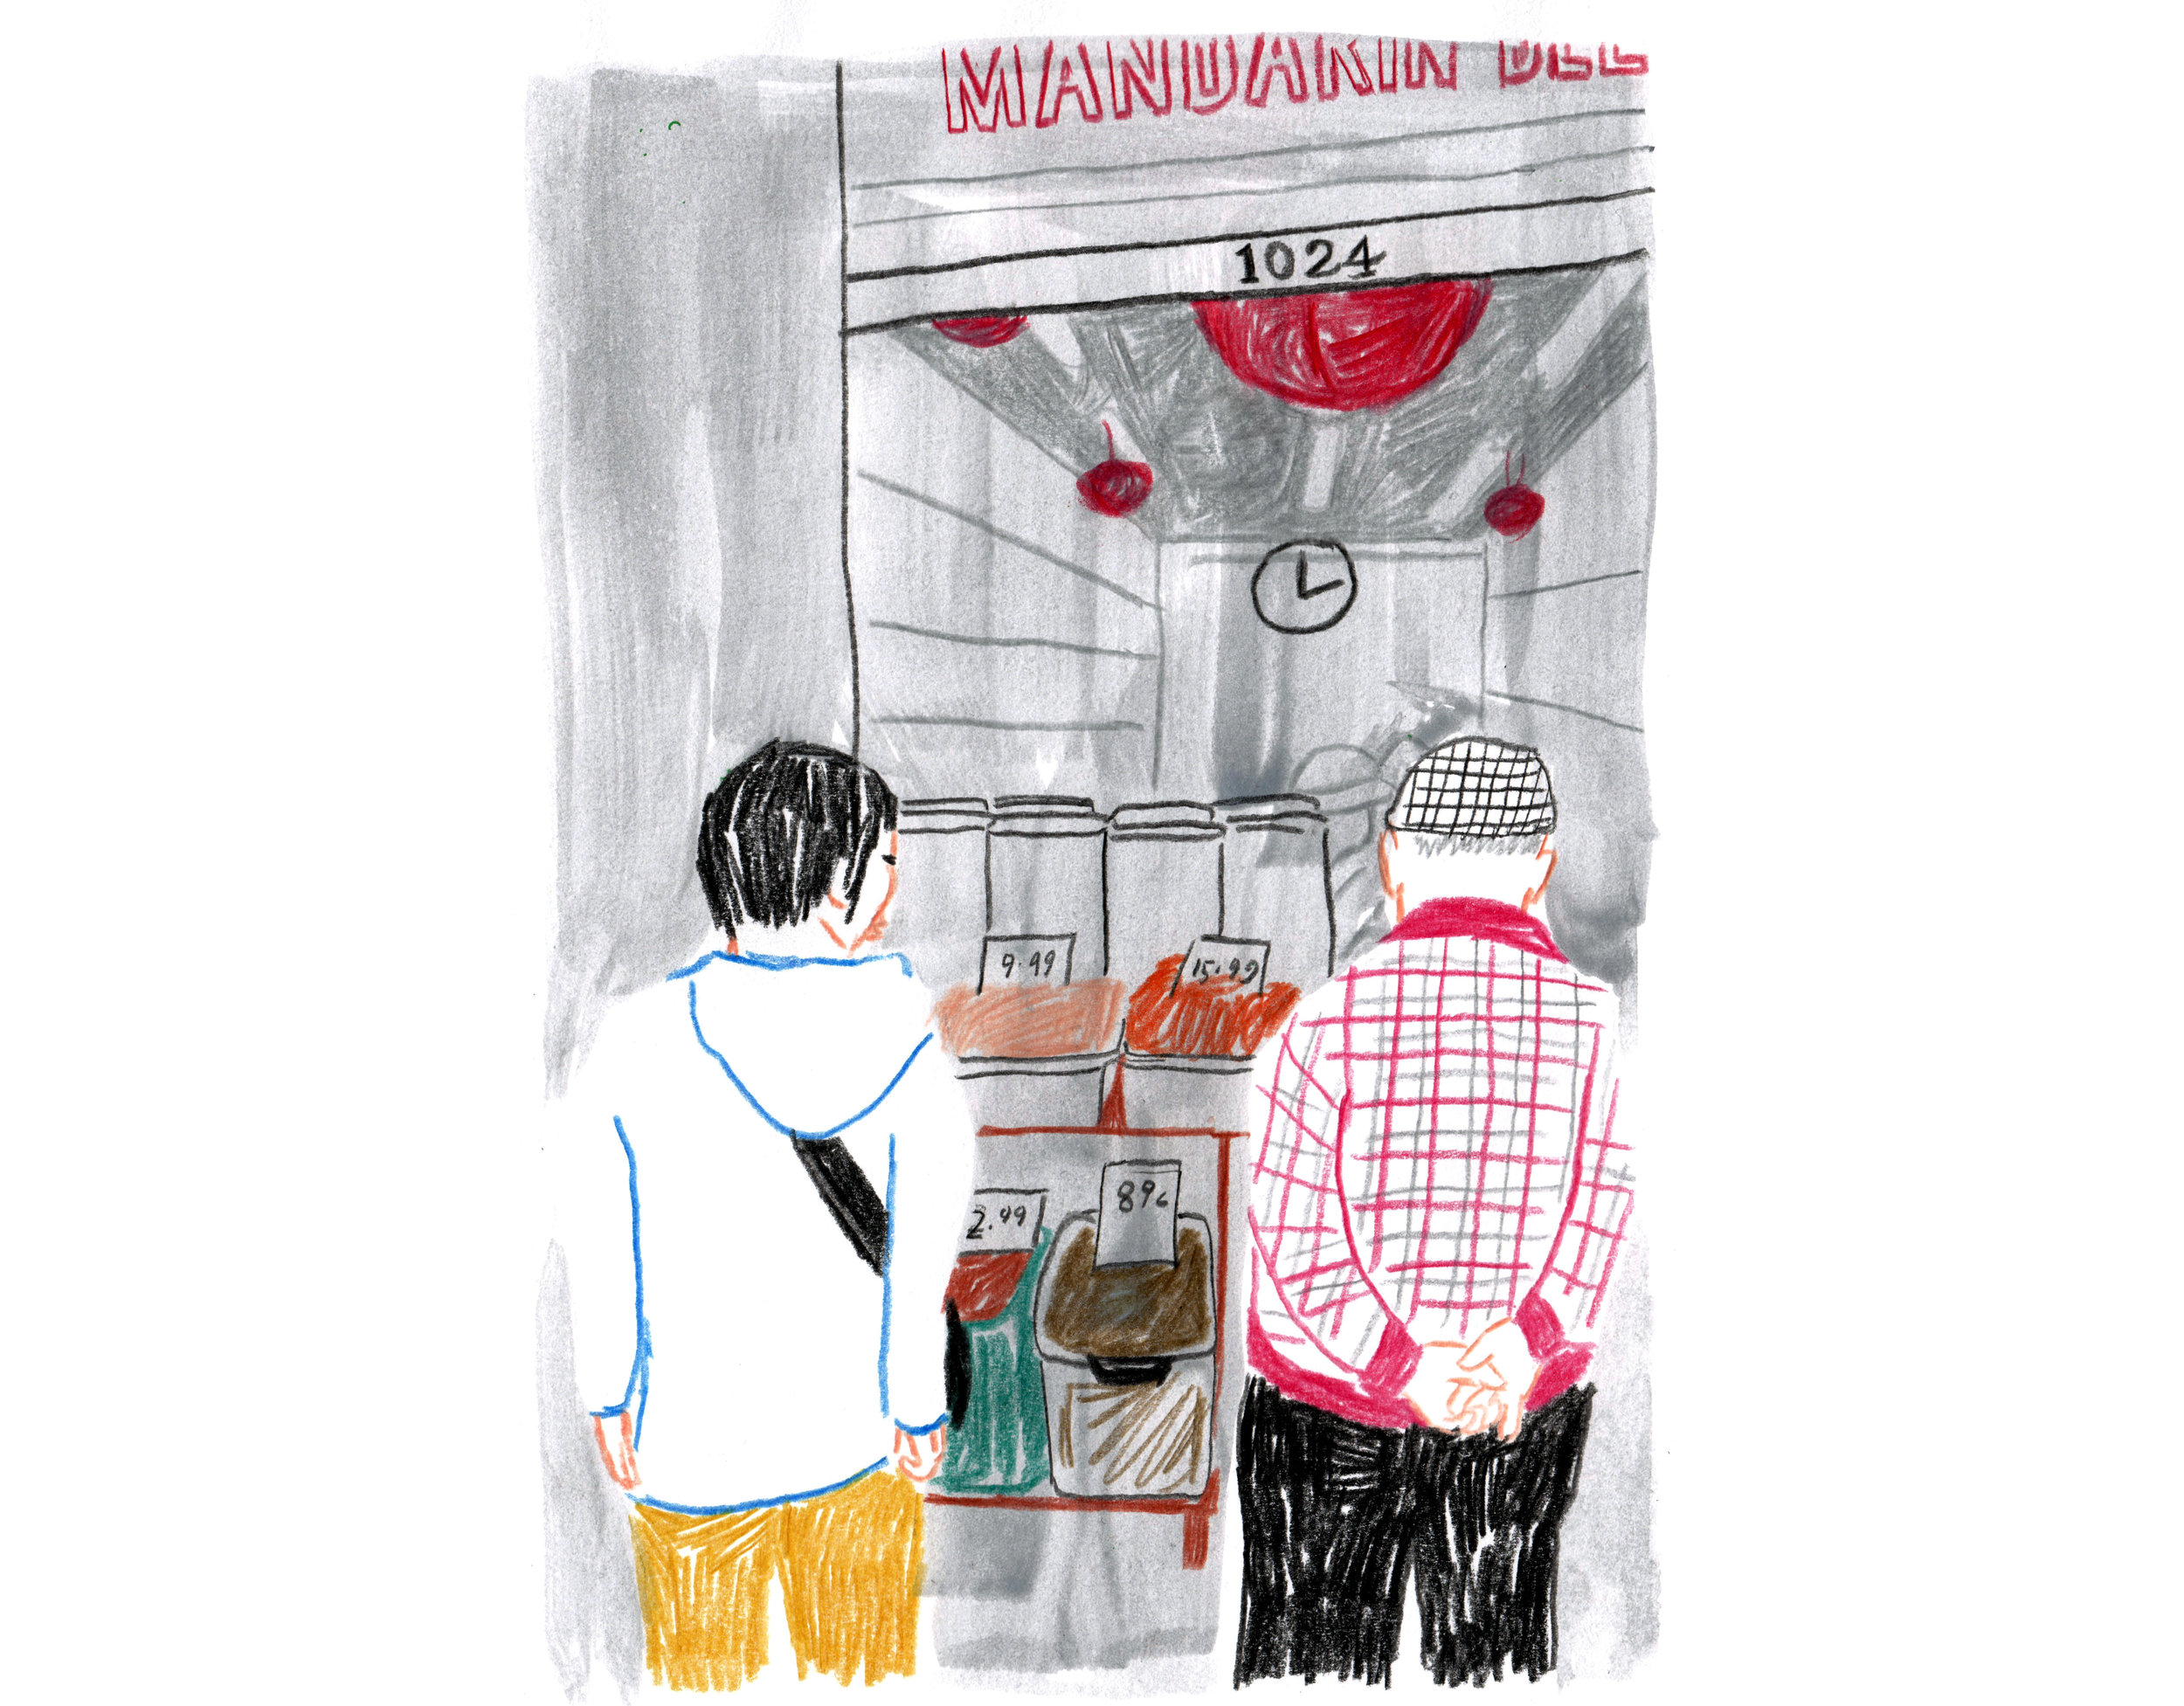 Couple looking at produce outside a shop in San Francisco's Chinatown.